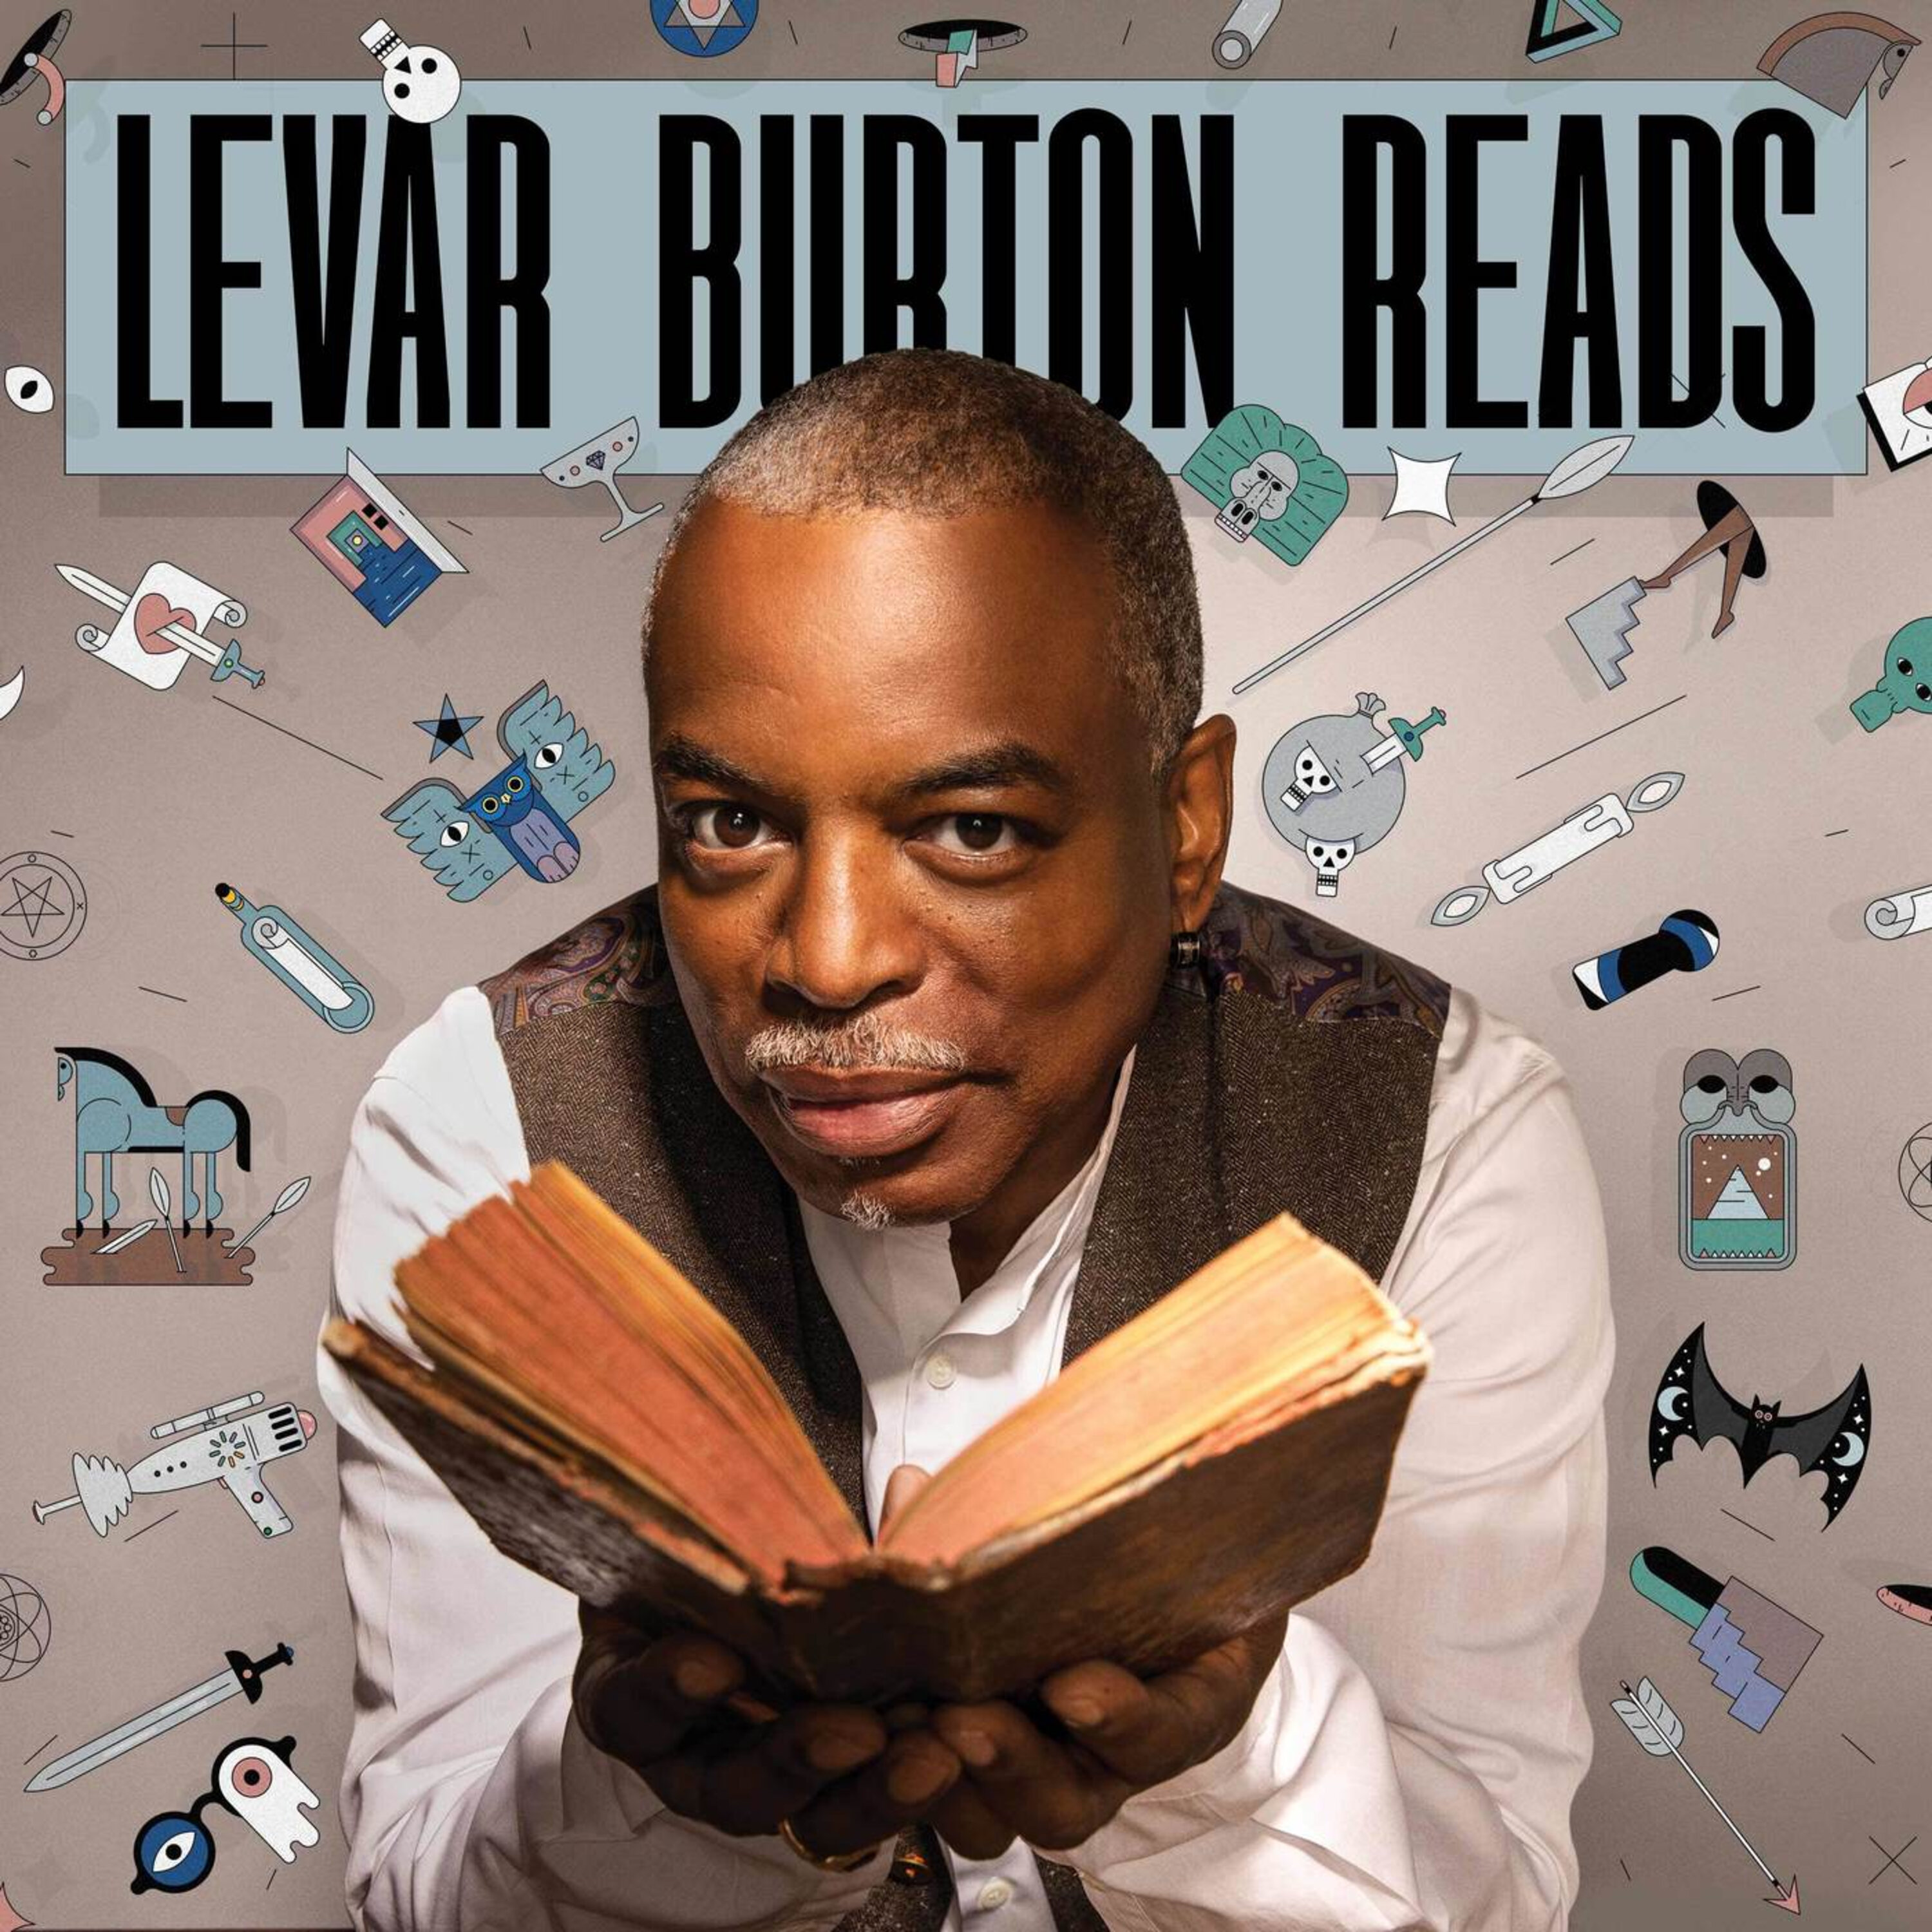 Image of LeVar Burton holding open a book with a gray background.